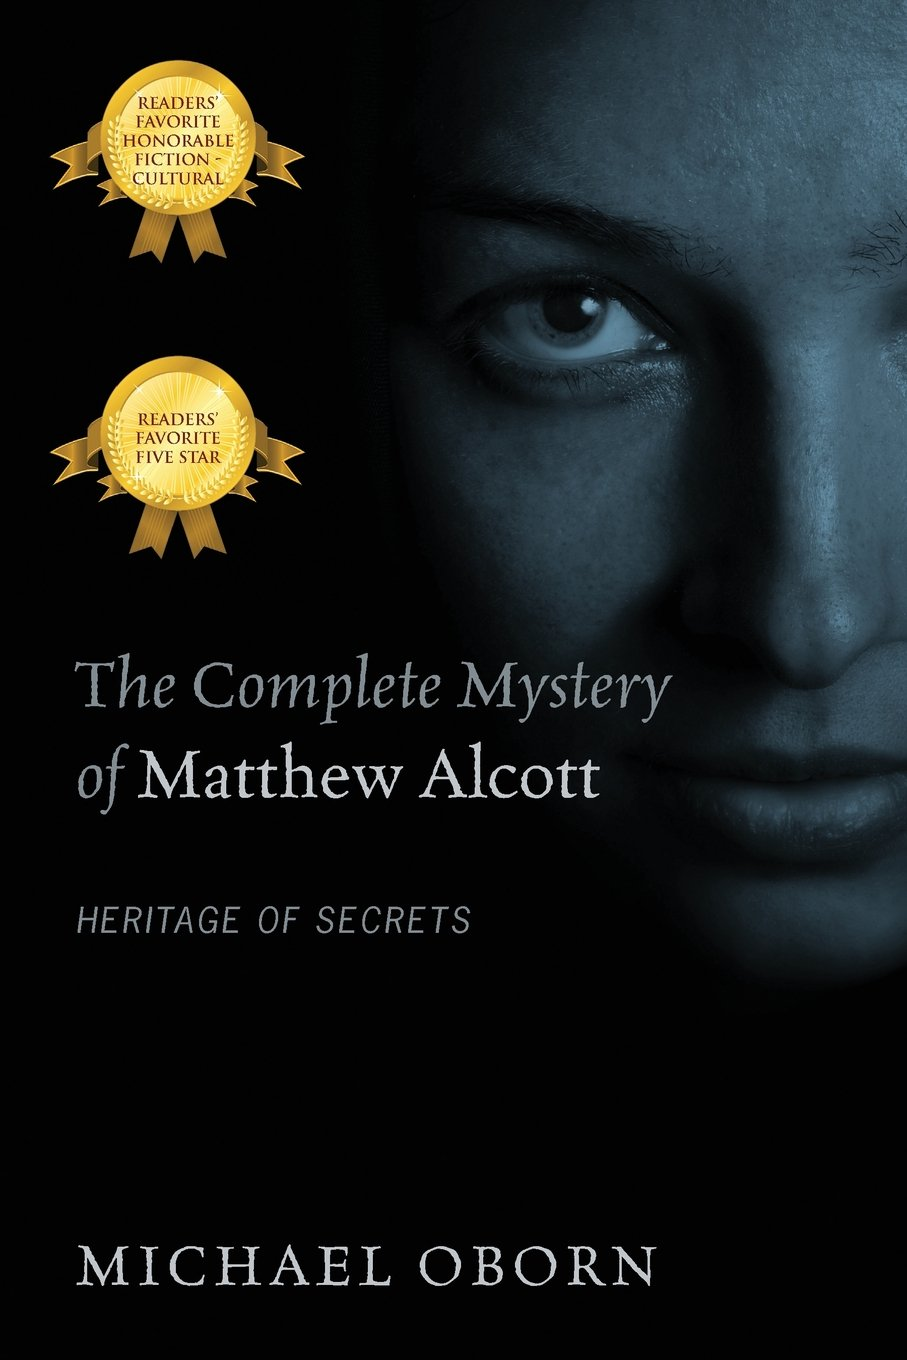 Download The Complete Mystery of Matthew Alcott: Heritage of Secrets PDF